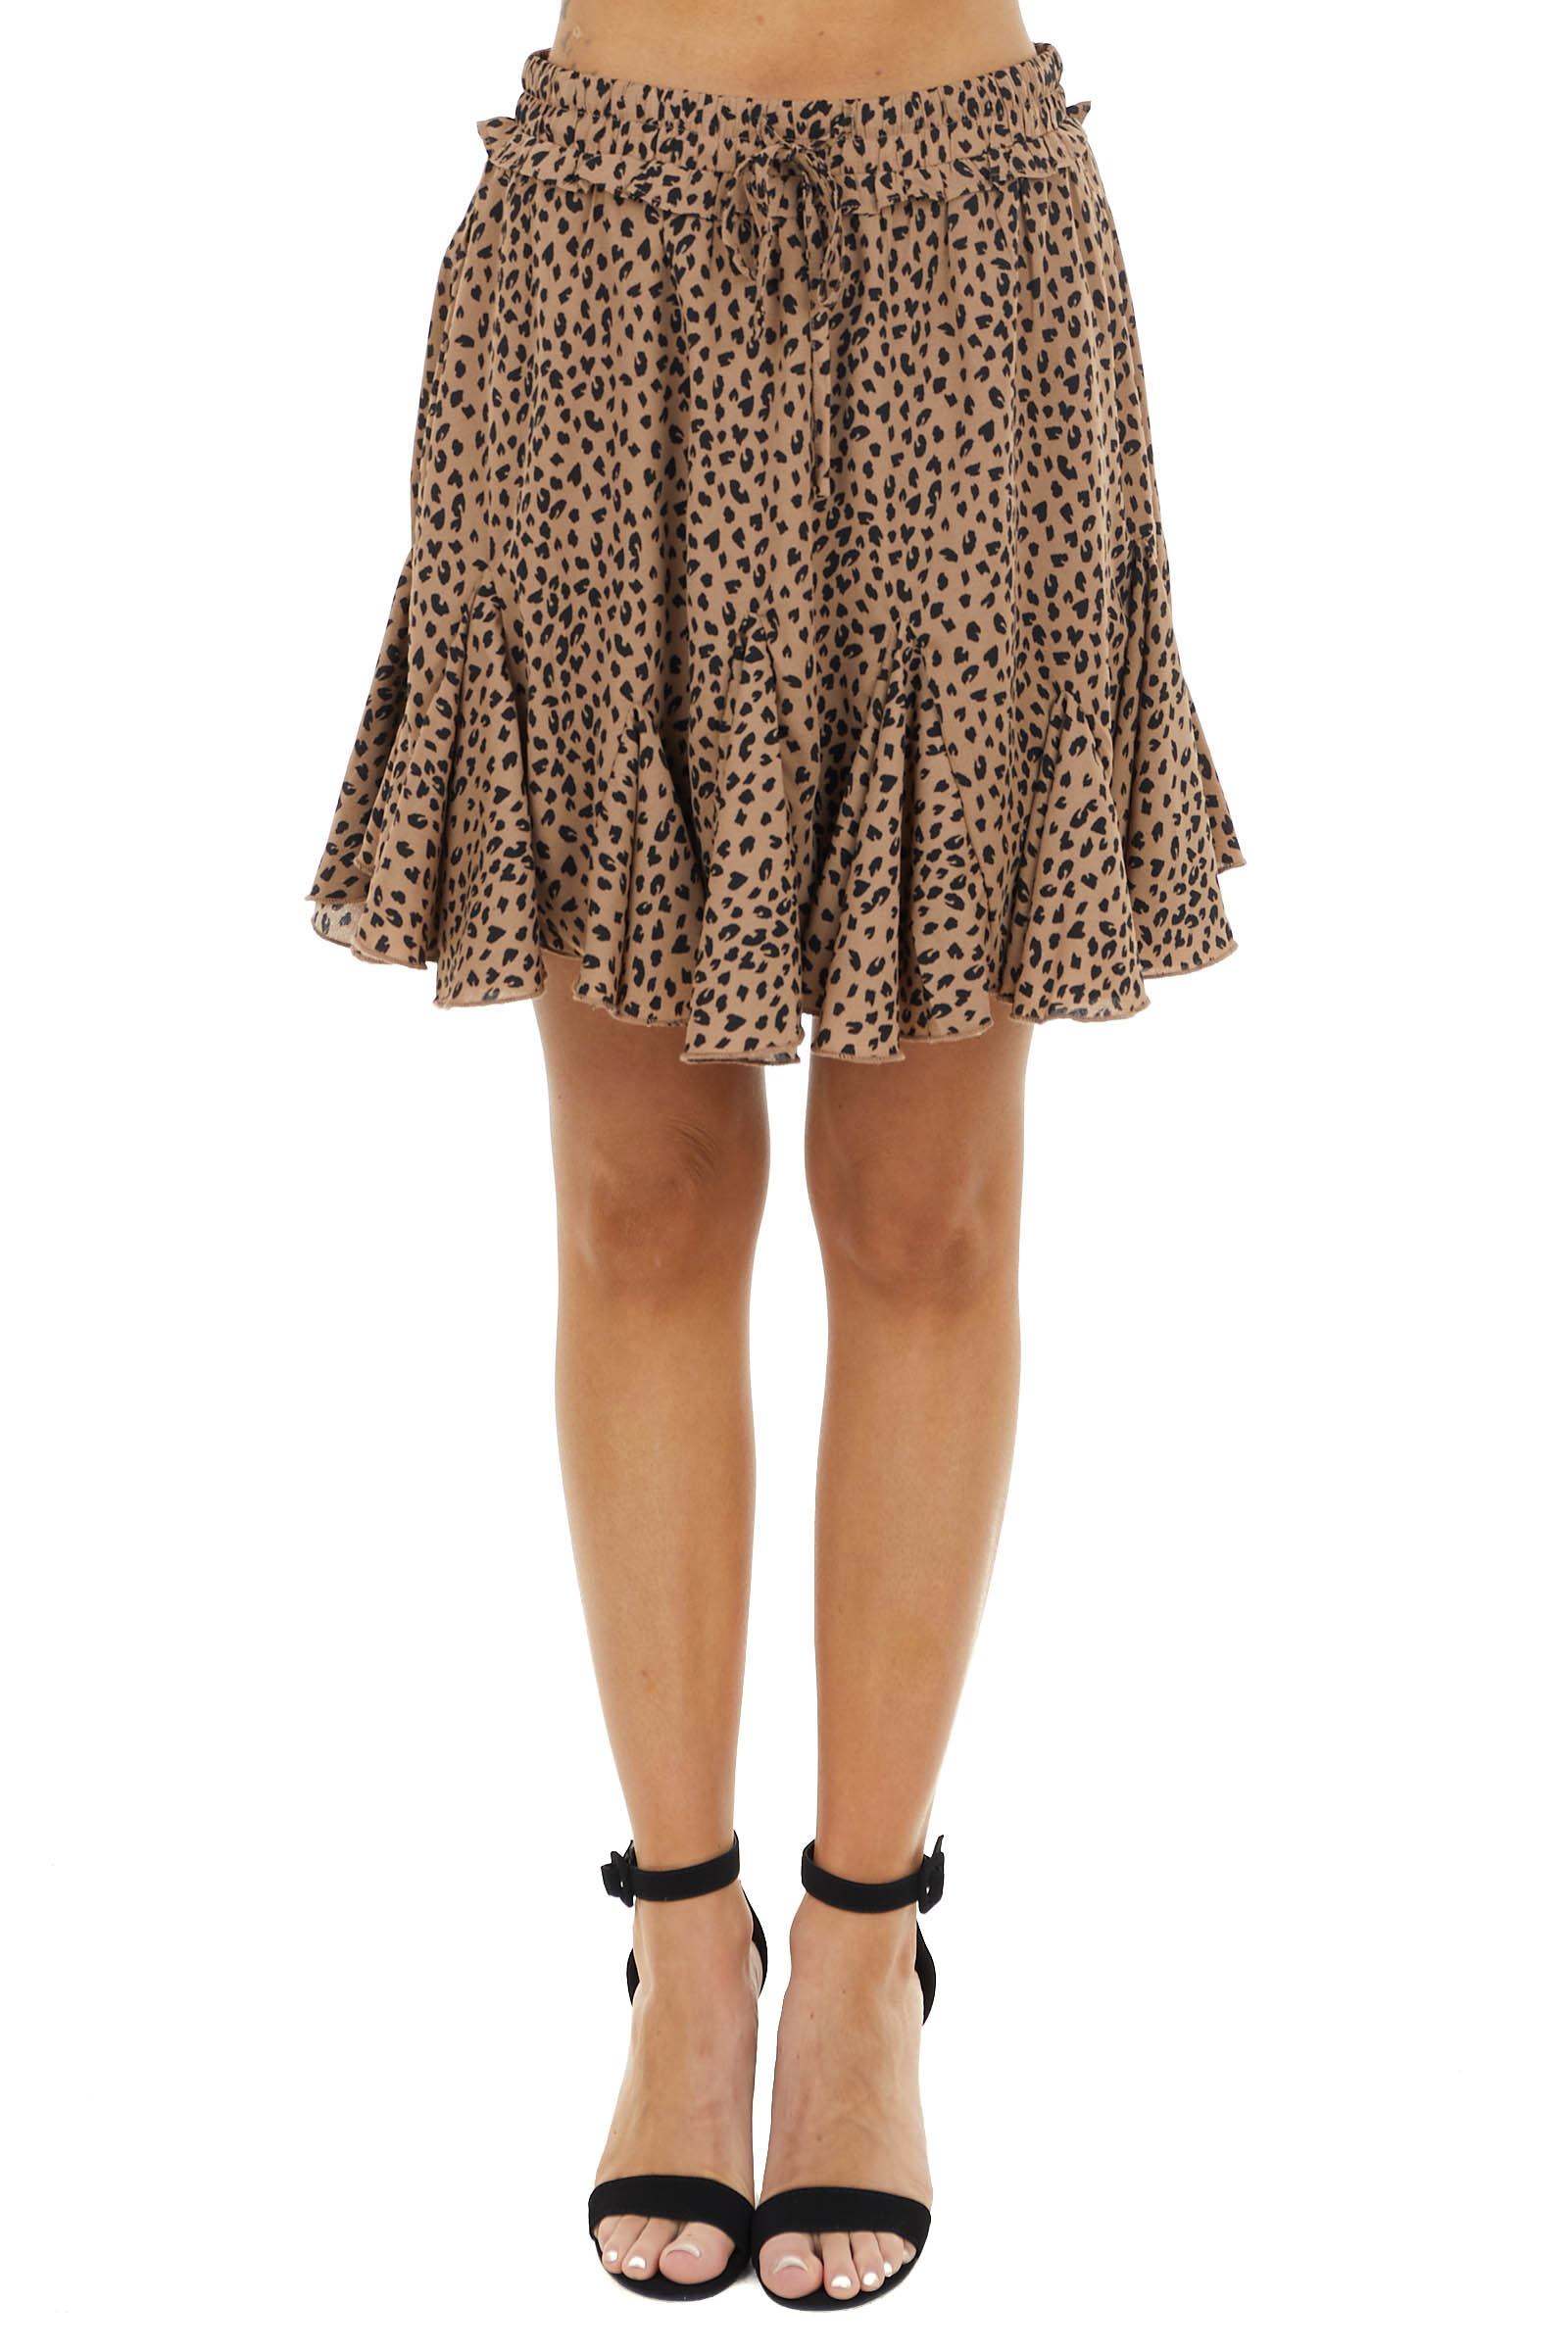 Camel and Black Leopard Print Mini Skirt with Flare Details